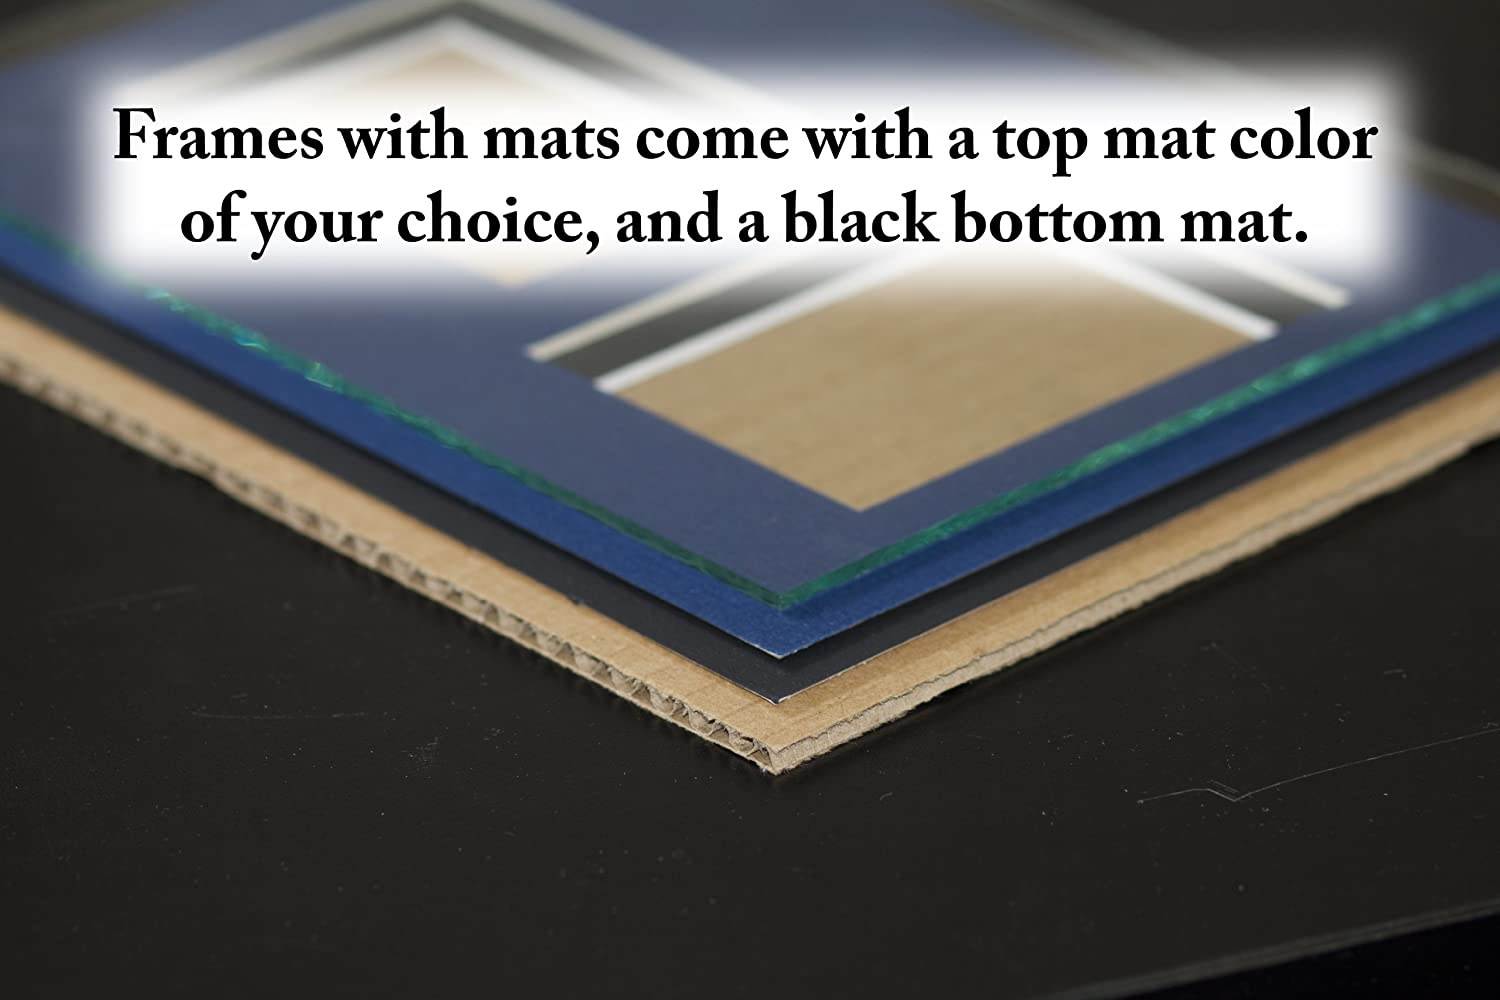 Art to Frames Double-Multimat-734-89//89-FRBW26079 Collage Photo Frame Double Mat with 1-18x22 Openings and Satin Black Frame